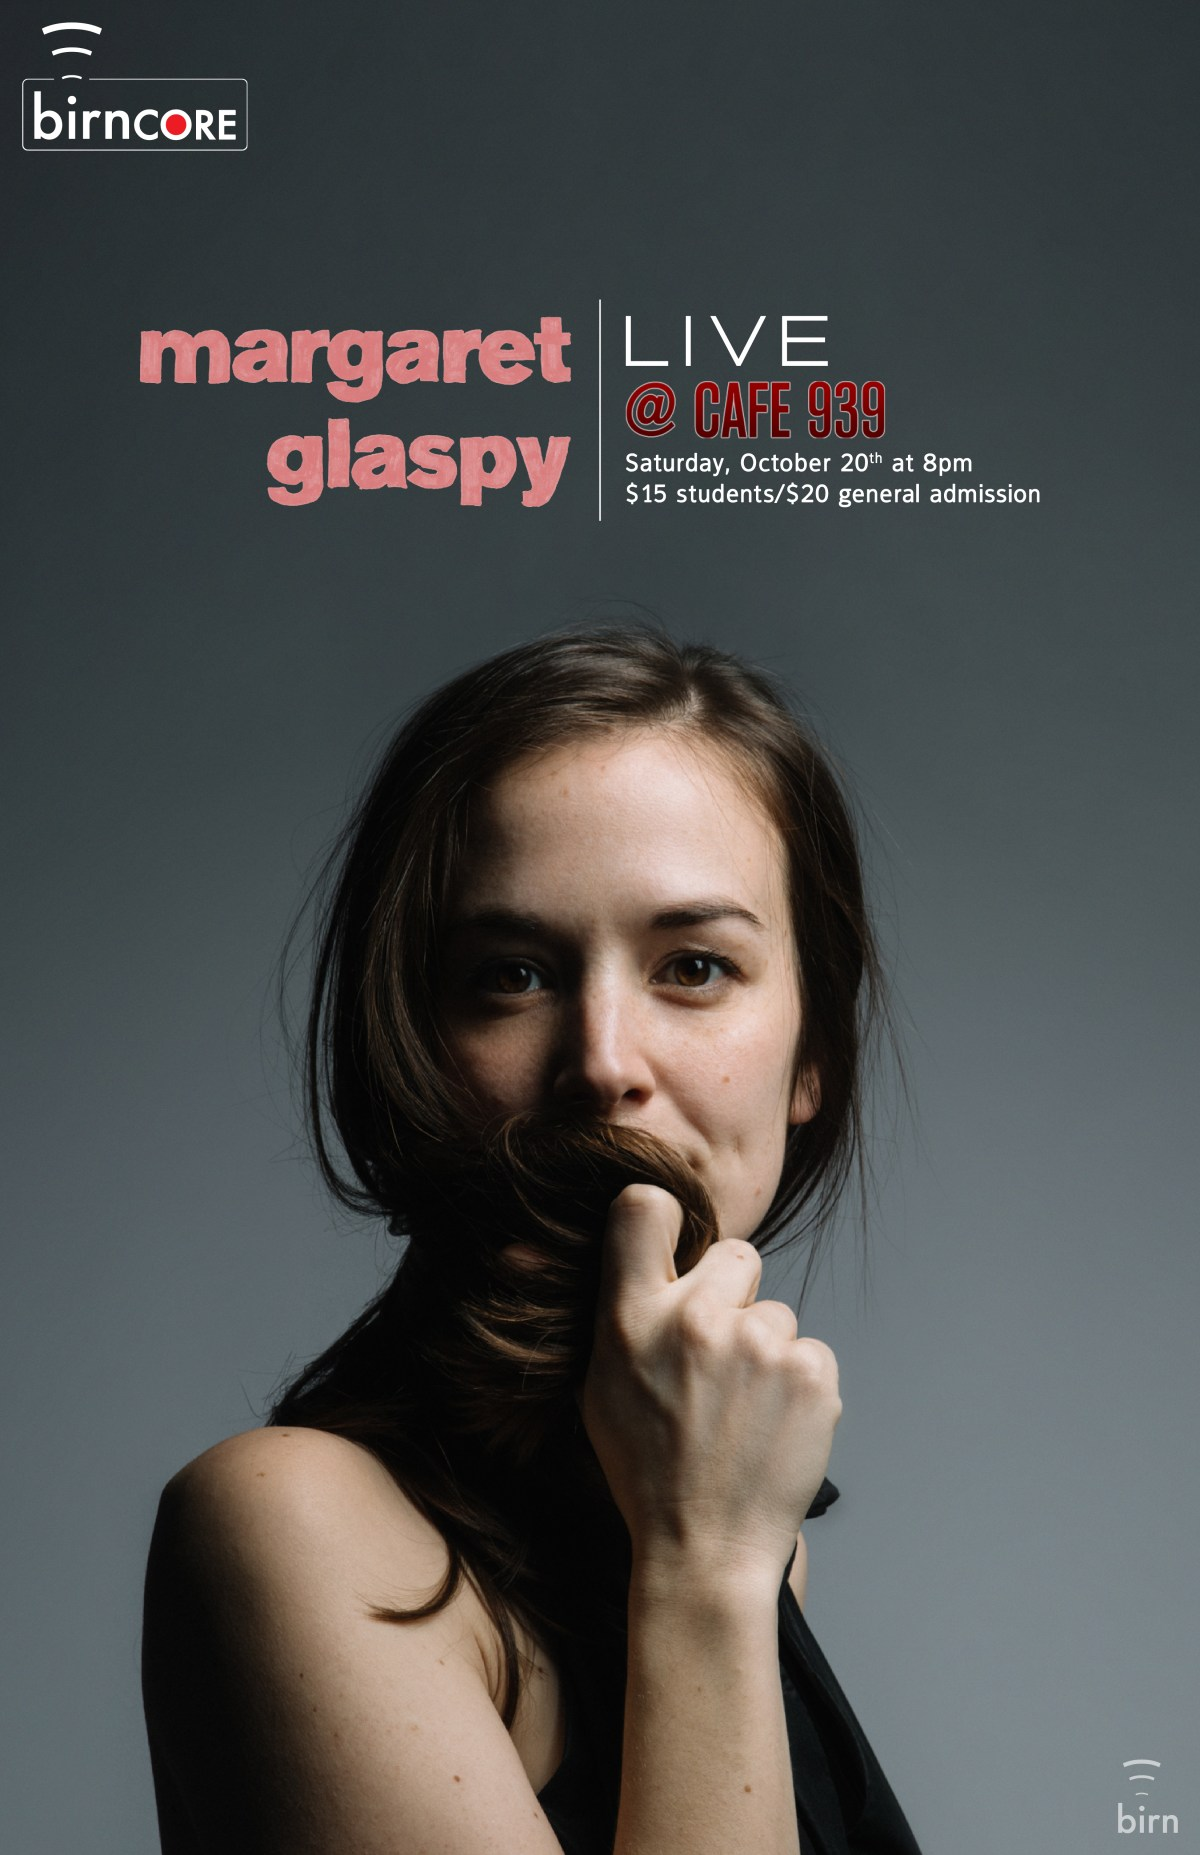 birnCORE Live featuring Margaret Glaspy at the Red Room on 10/20